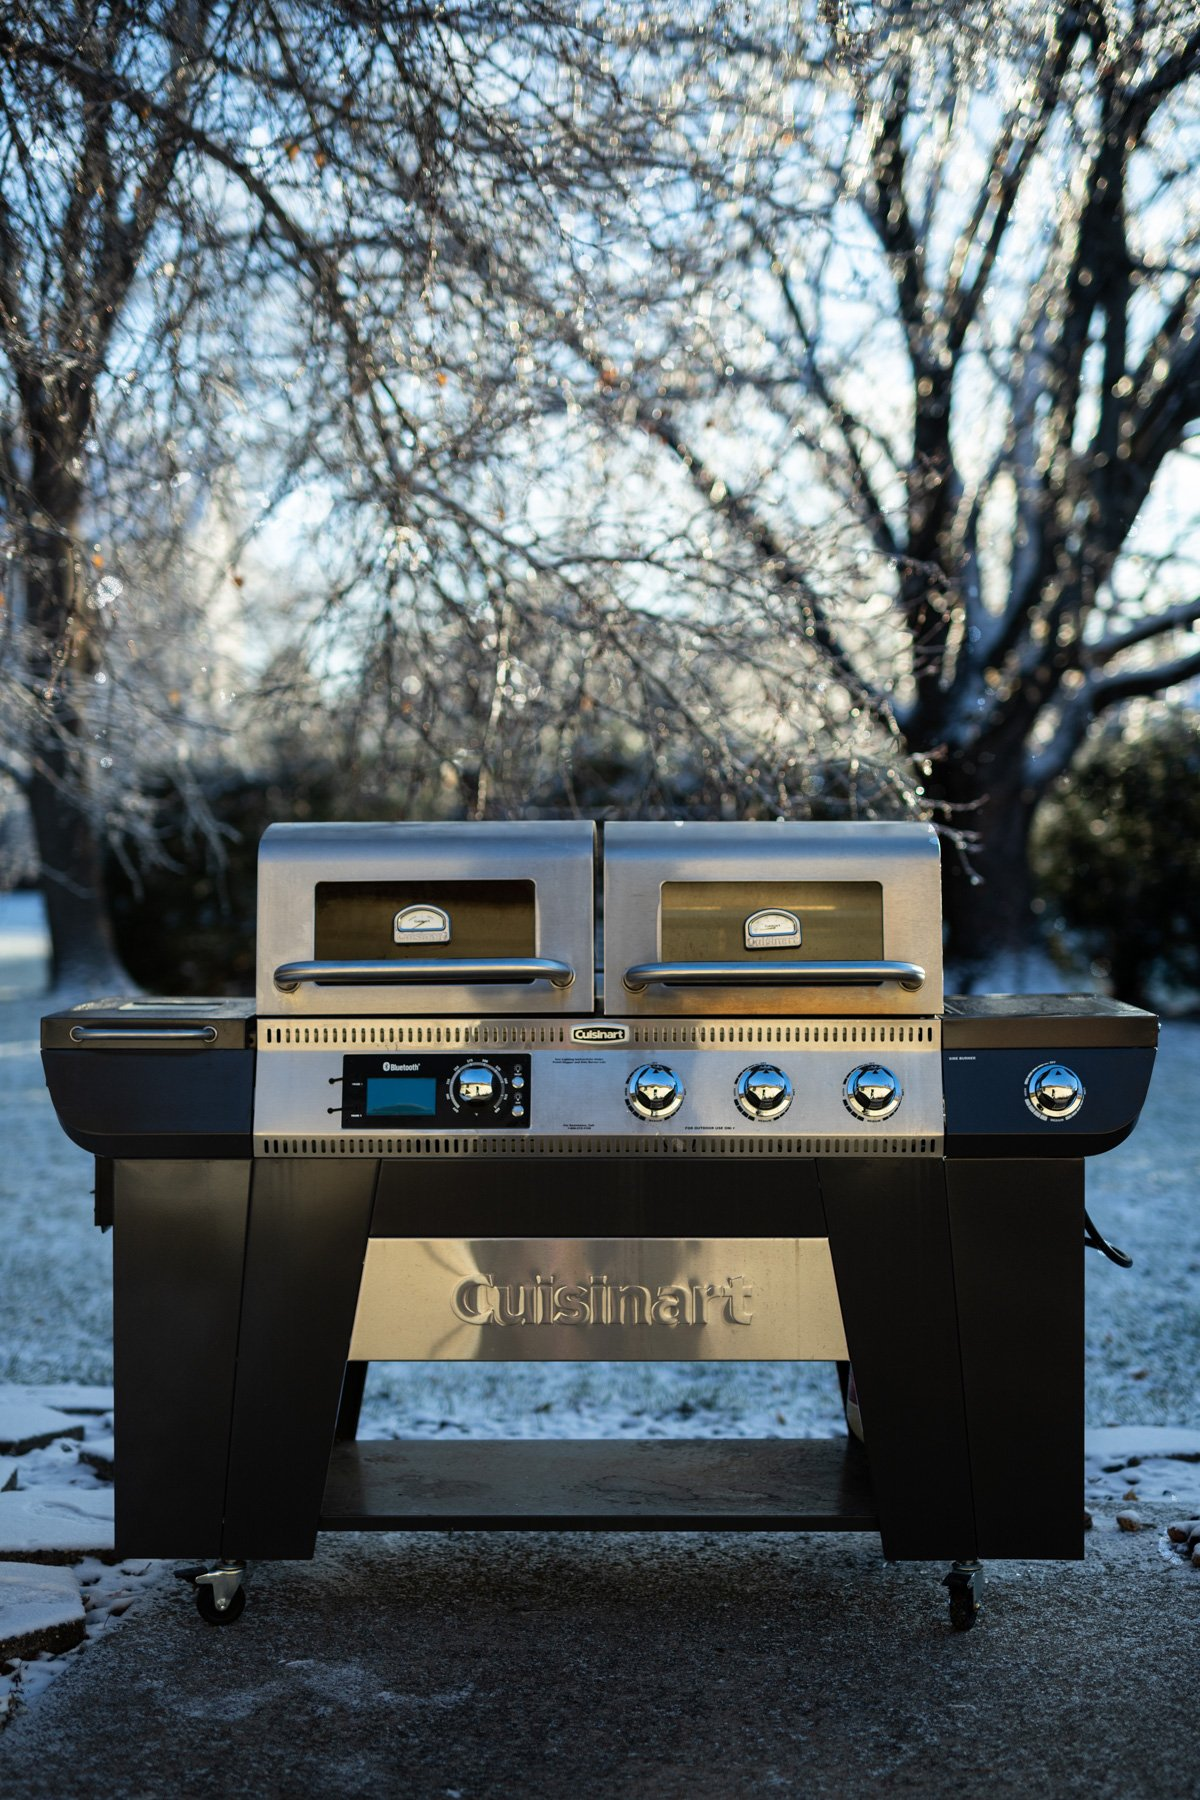 cuisinart twin oaks pellet & gas grill with an icy background